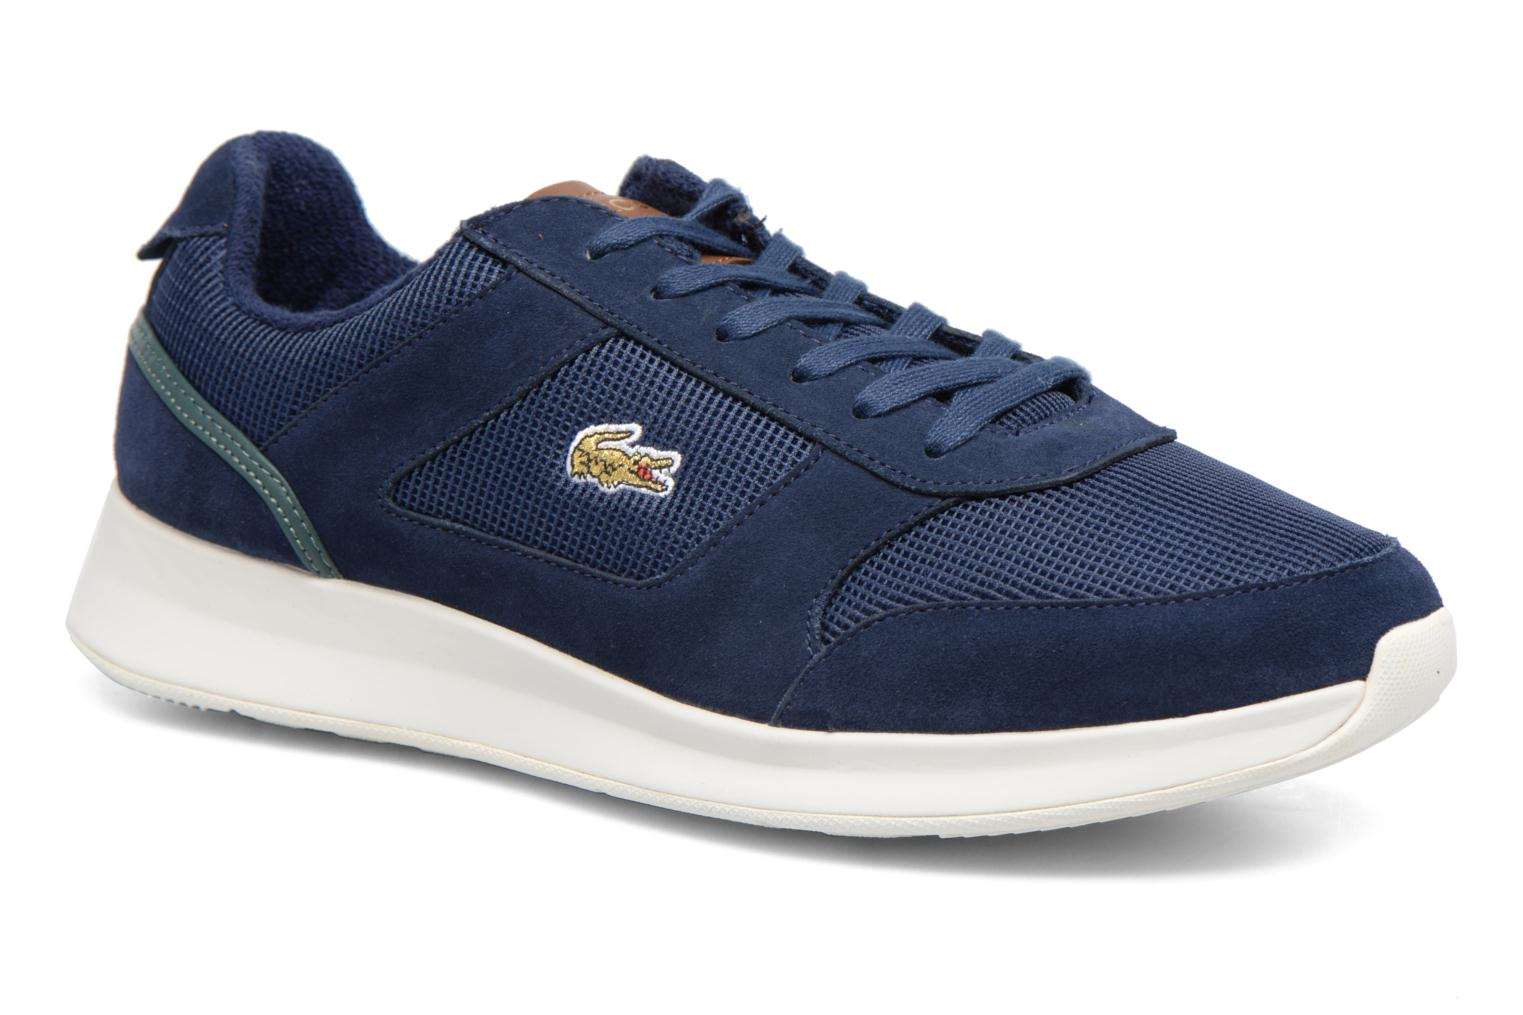 JOGGEUR 317 4 NVY/BRW